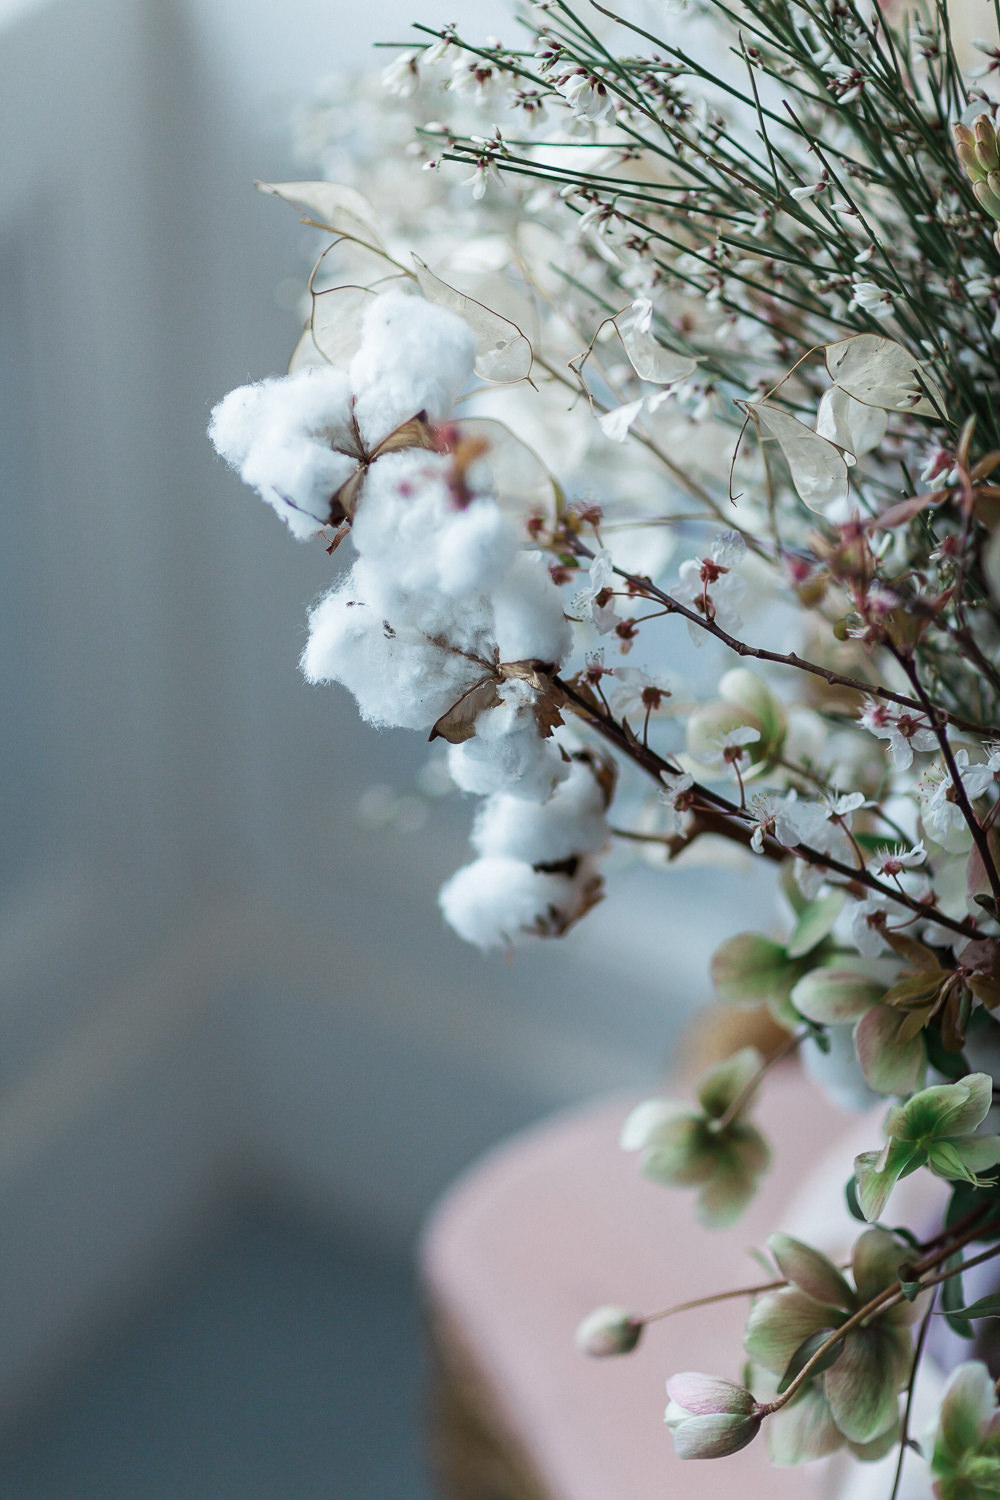 Modern Dance Ballet Inspired Fine Art Editorial Somerley House Wild Bridal Bouquet Cherry Blossoms Cotton Flowers Lunaria | Romantic Soft Wedding Ideas Siobhan H Photography